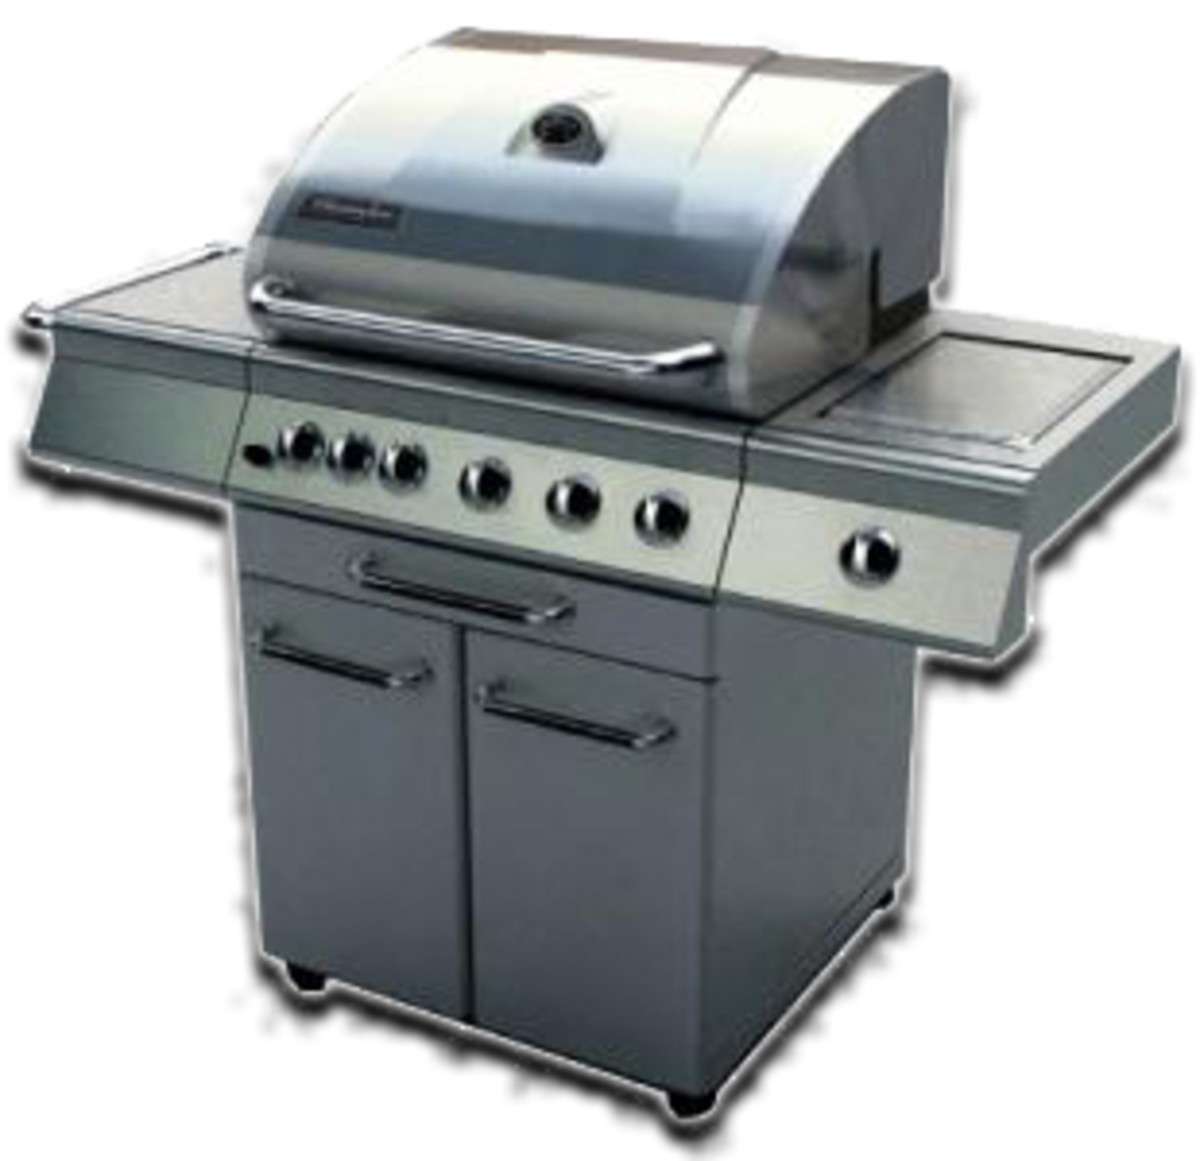 Charmglow gas grill parts have evolved dramatically over the past thirty years.